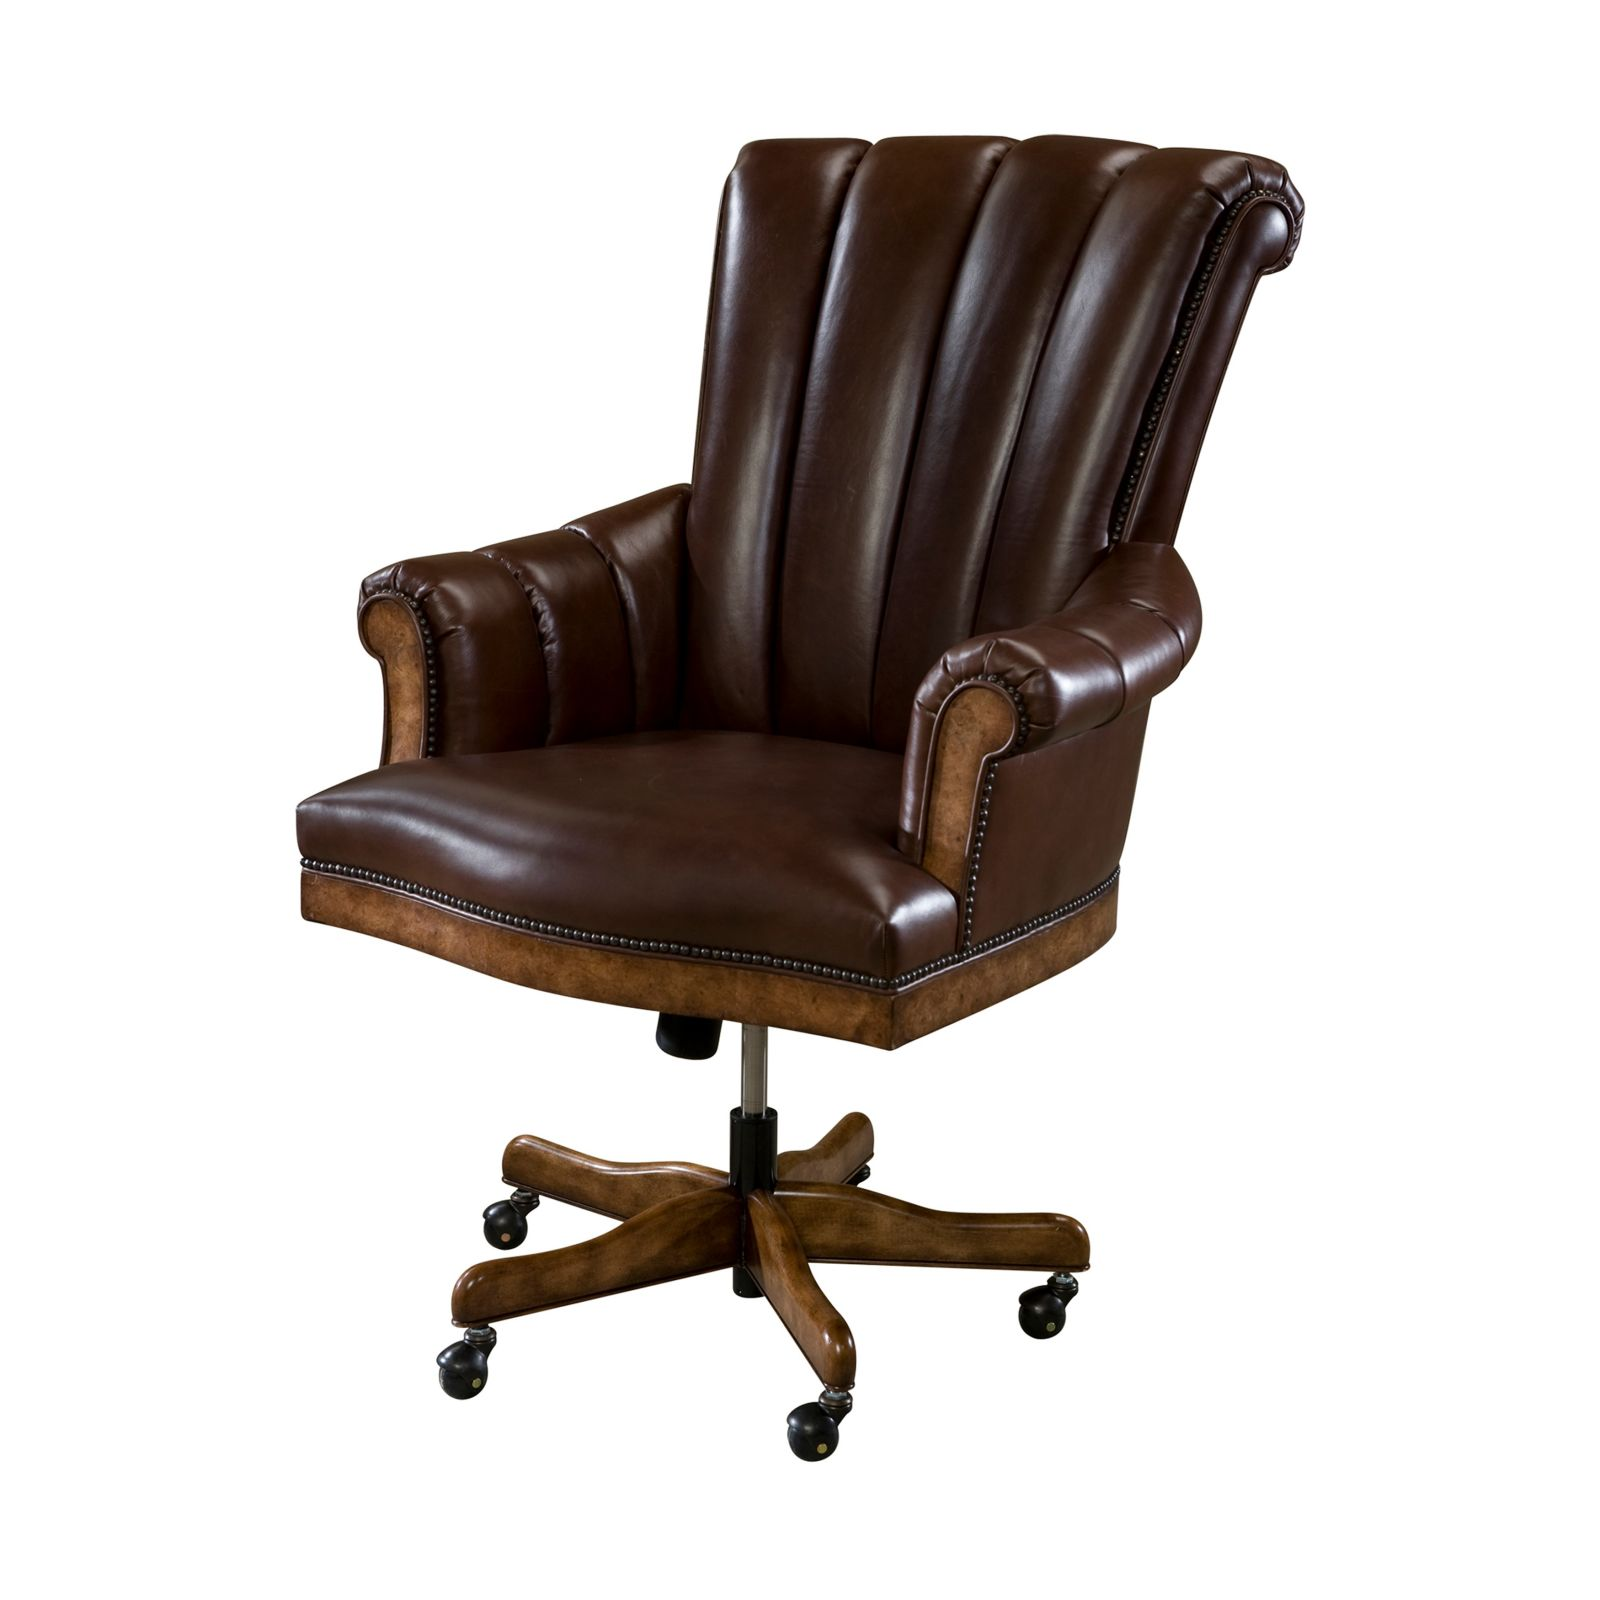 Chestnut burl veneered executive chair